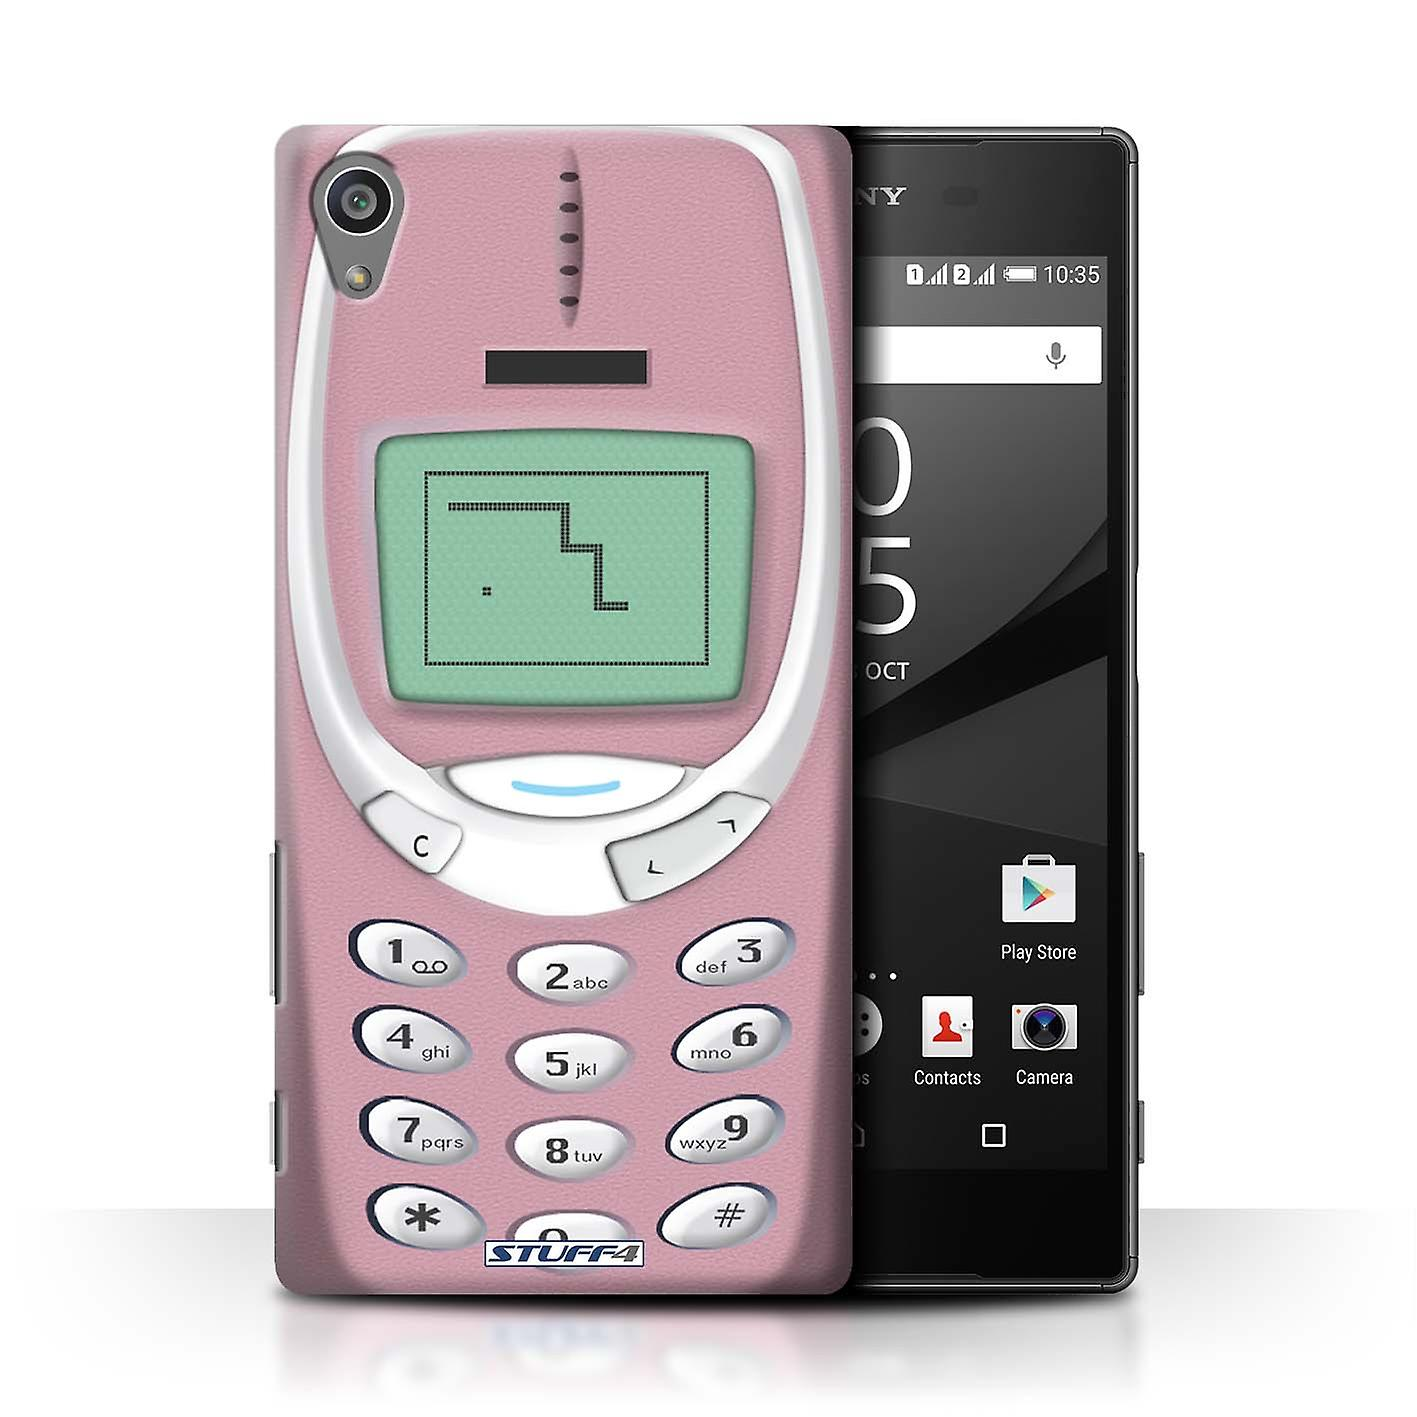 Stuff4 Case Cover For Sony Xperia Z5 5 2 Pink Nokia 3310